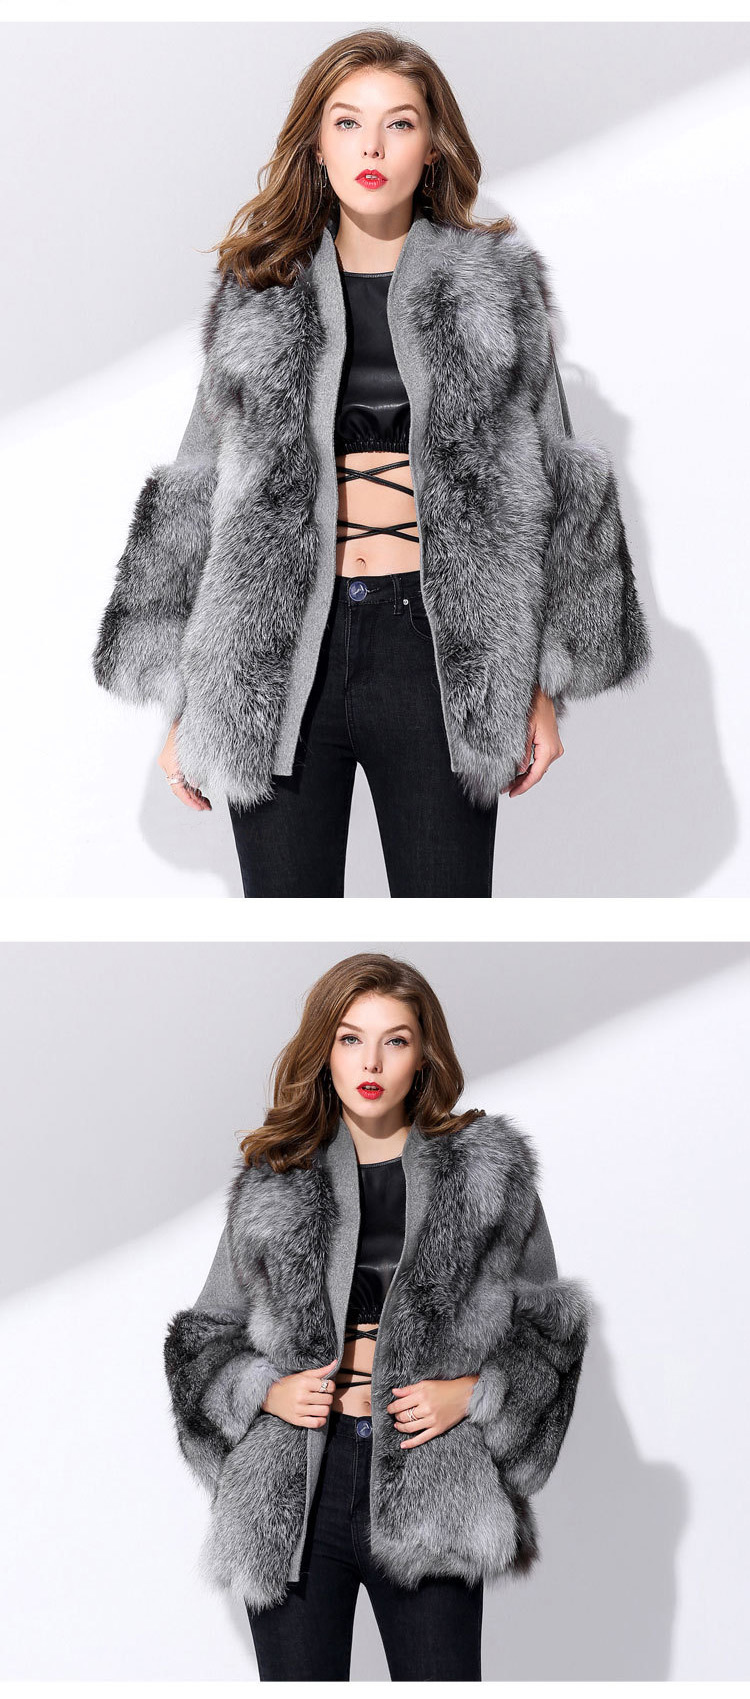 fca8bce02230 Fox Fur Coat with Double-Sided Wool Trim 991c Details 2